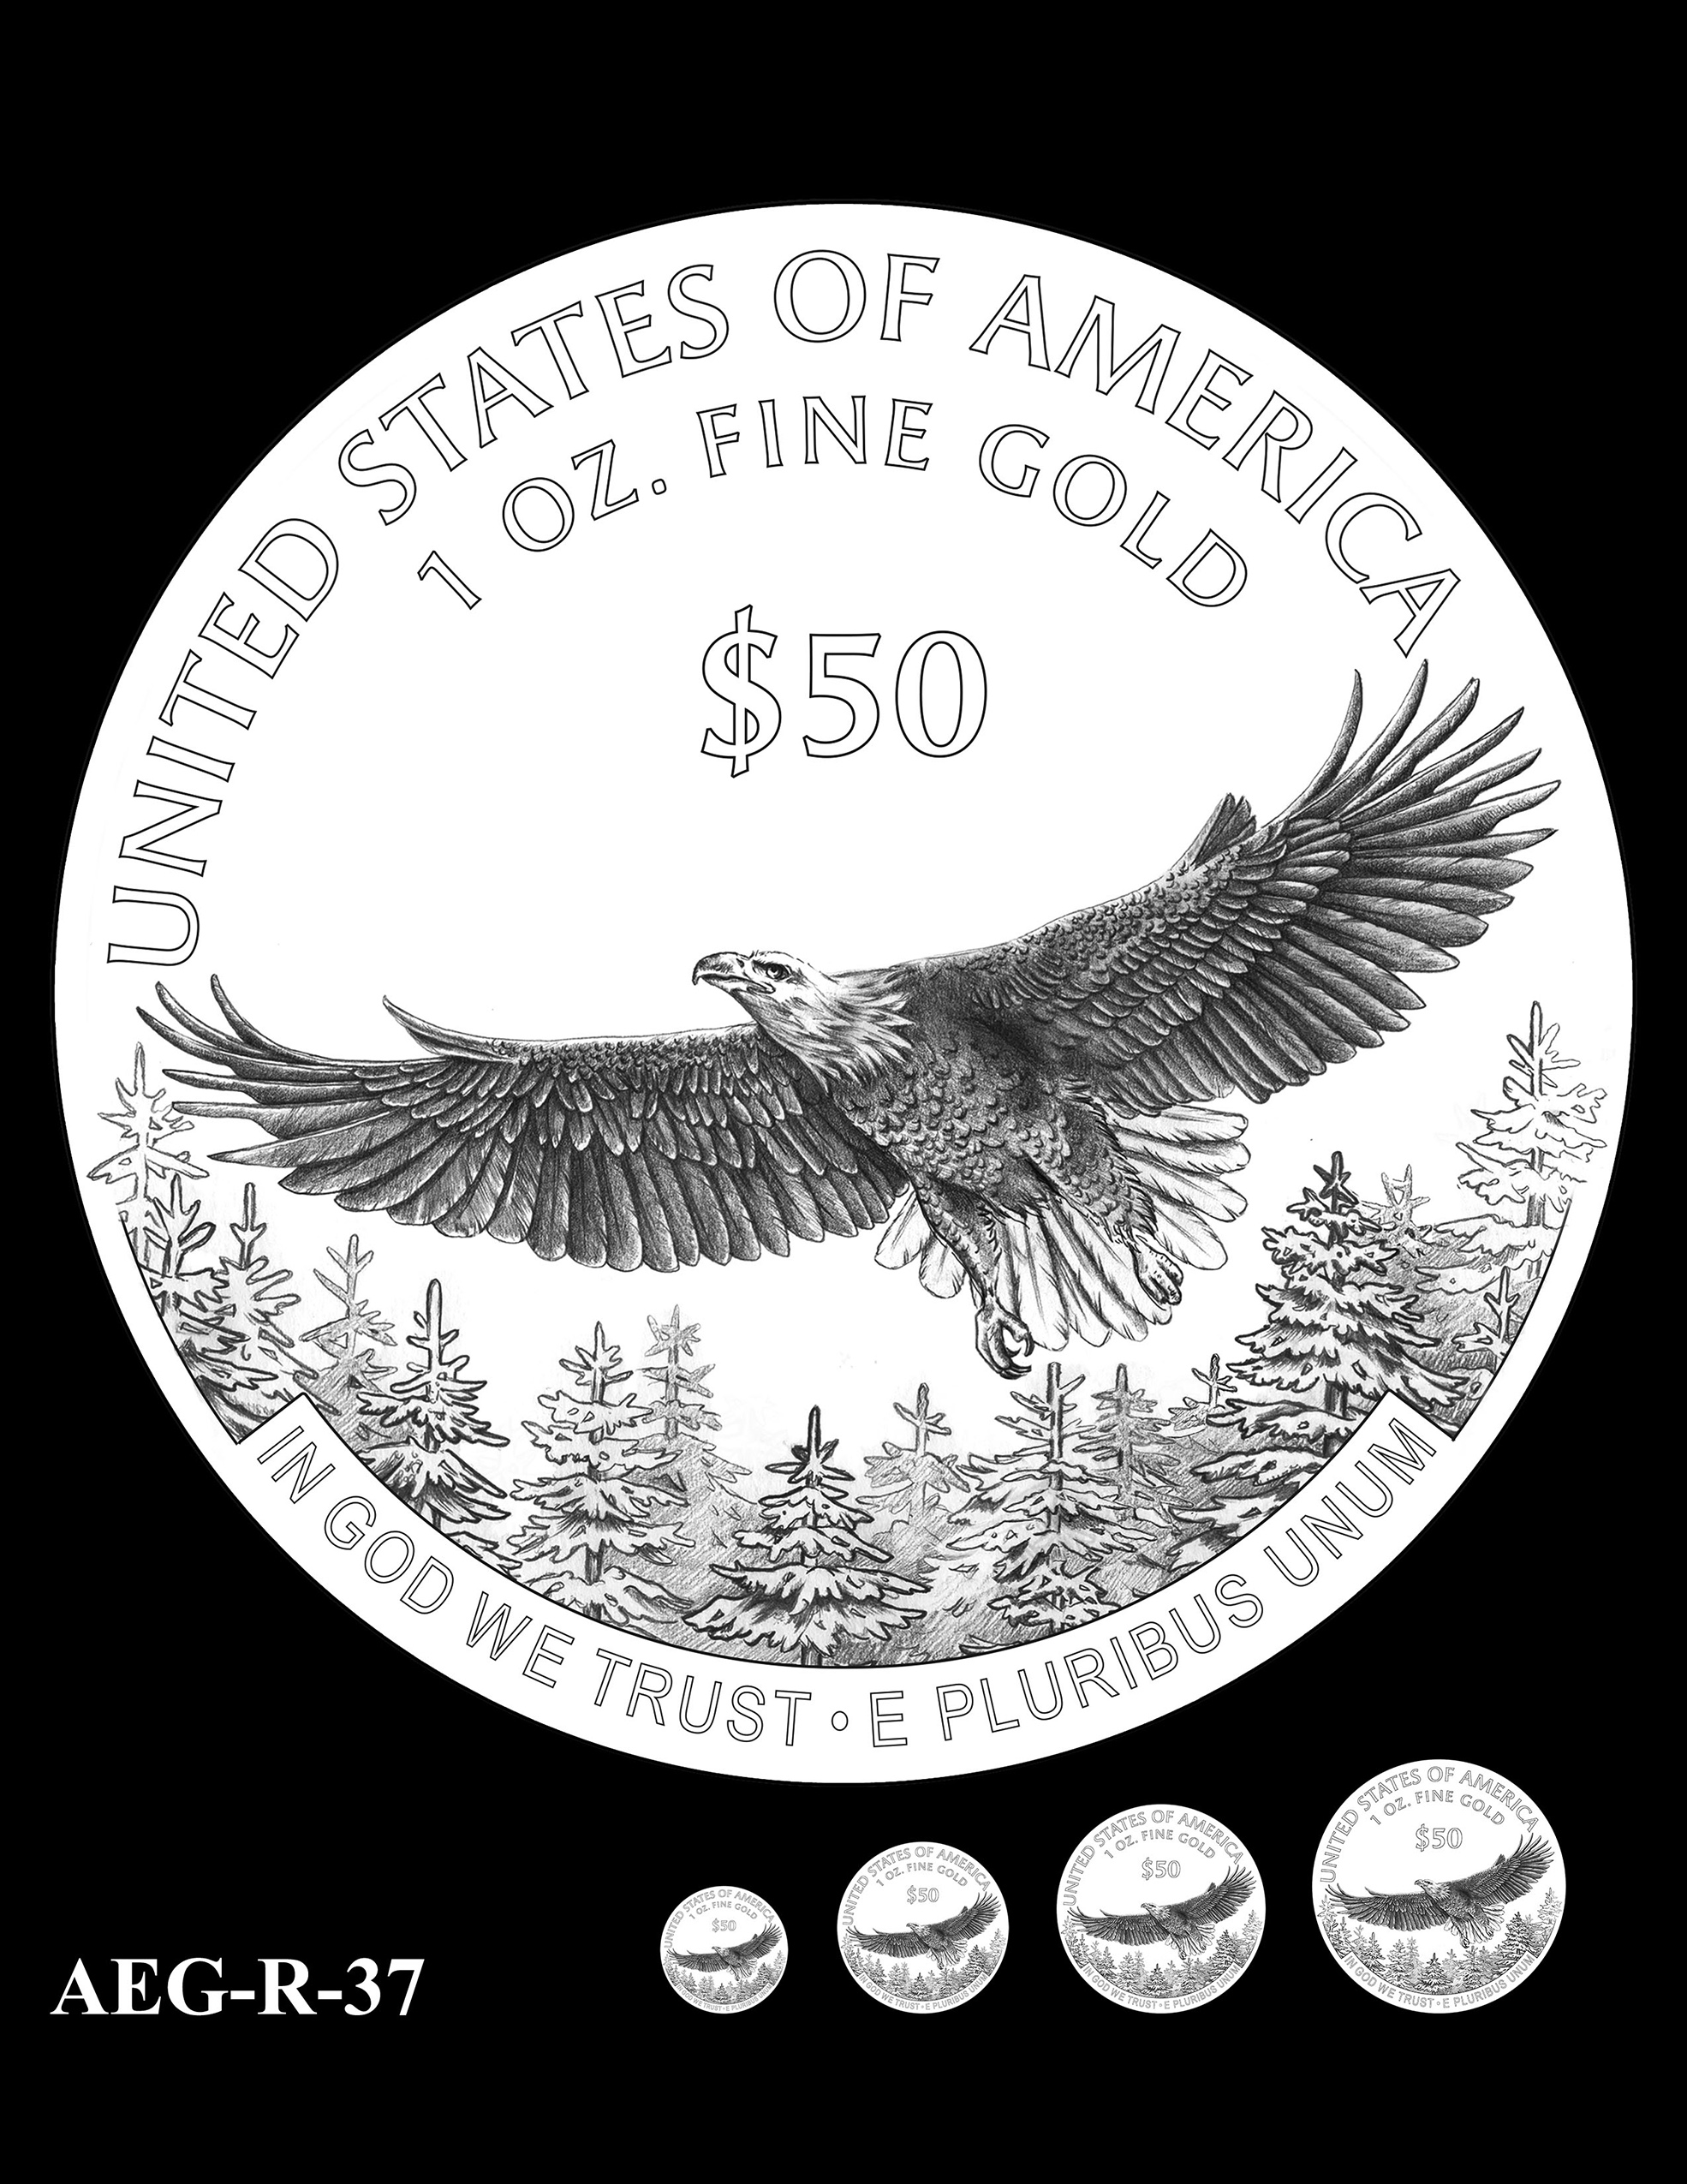 AEG-R-37 -- American Eagle Proof and Bullion Gold Coin - Reverse